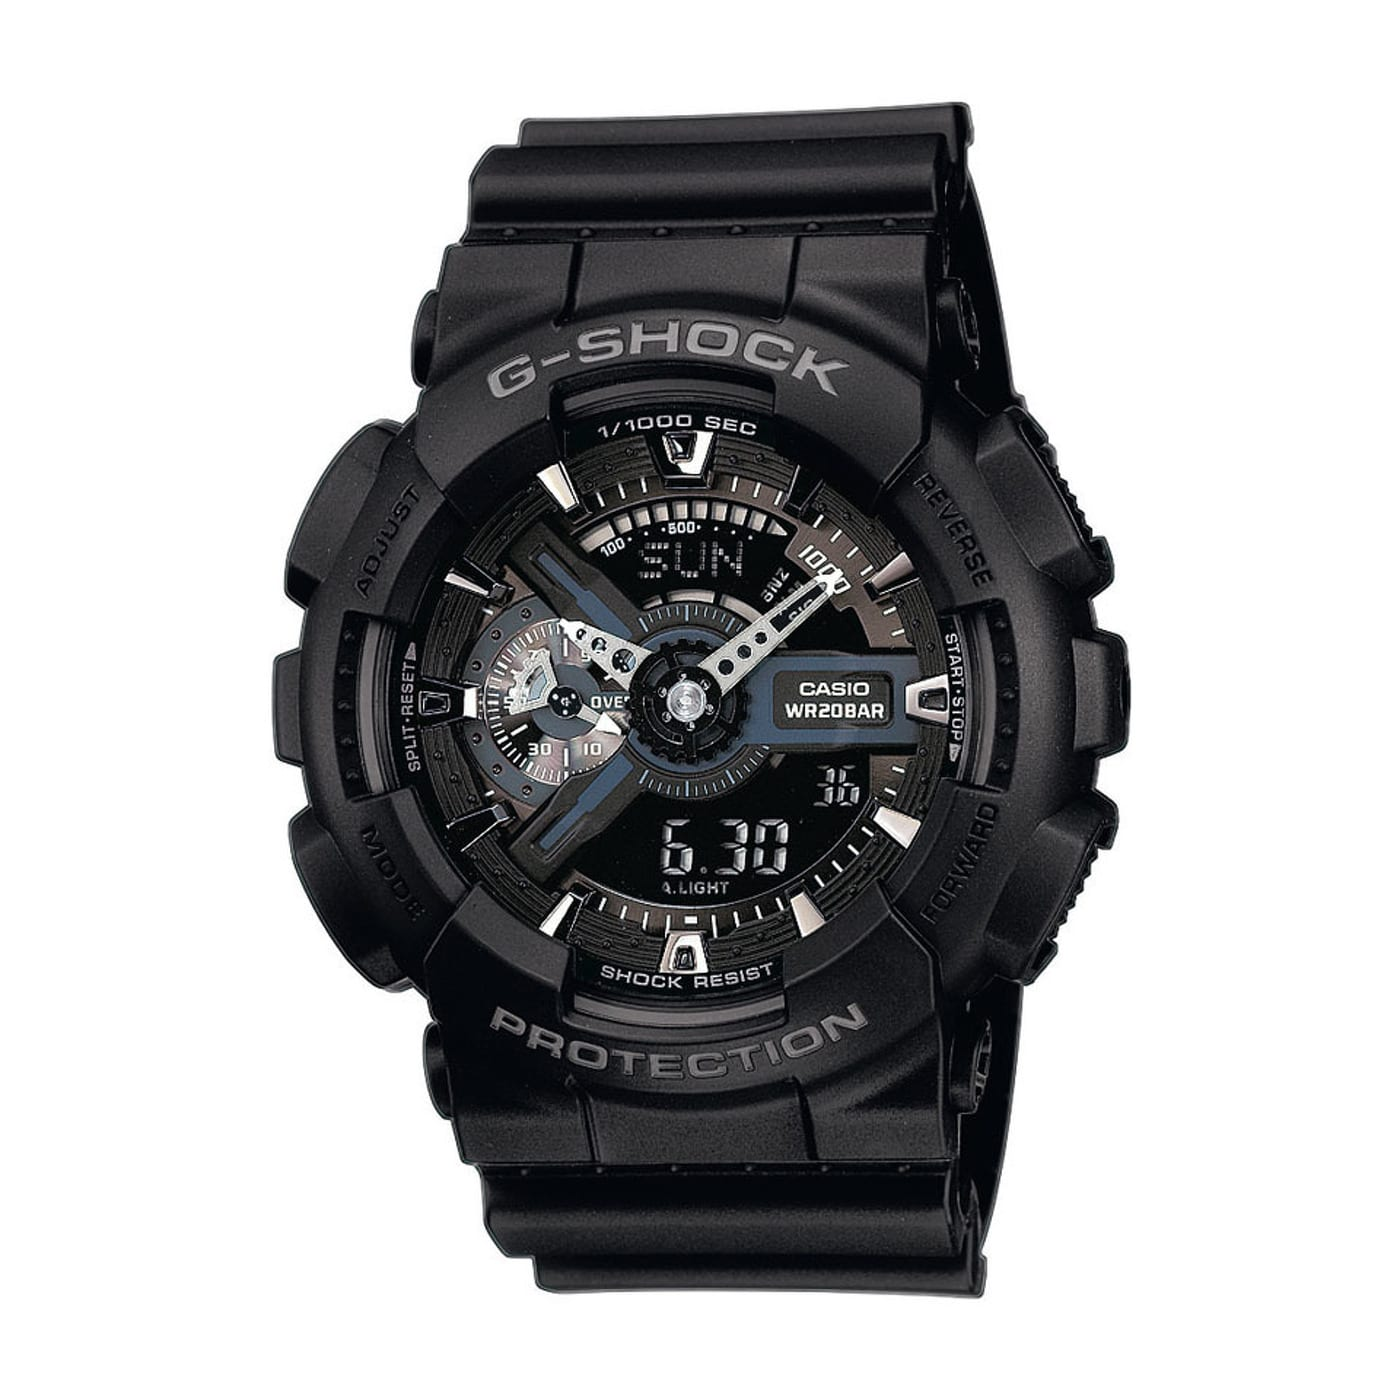 Casio G-Shock GA 110-1BER black / gray